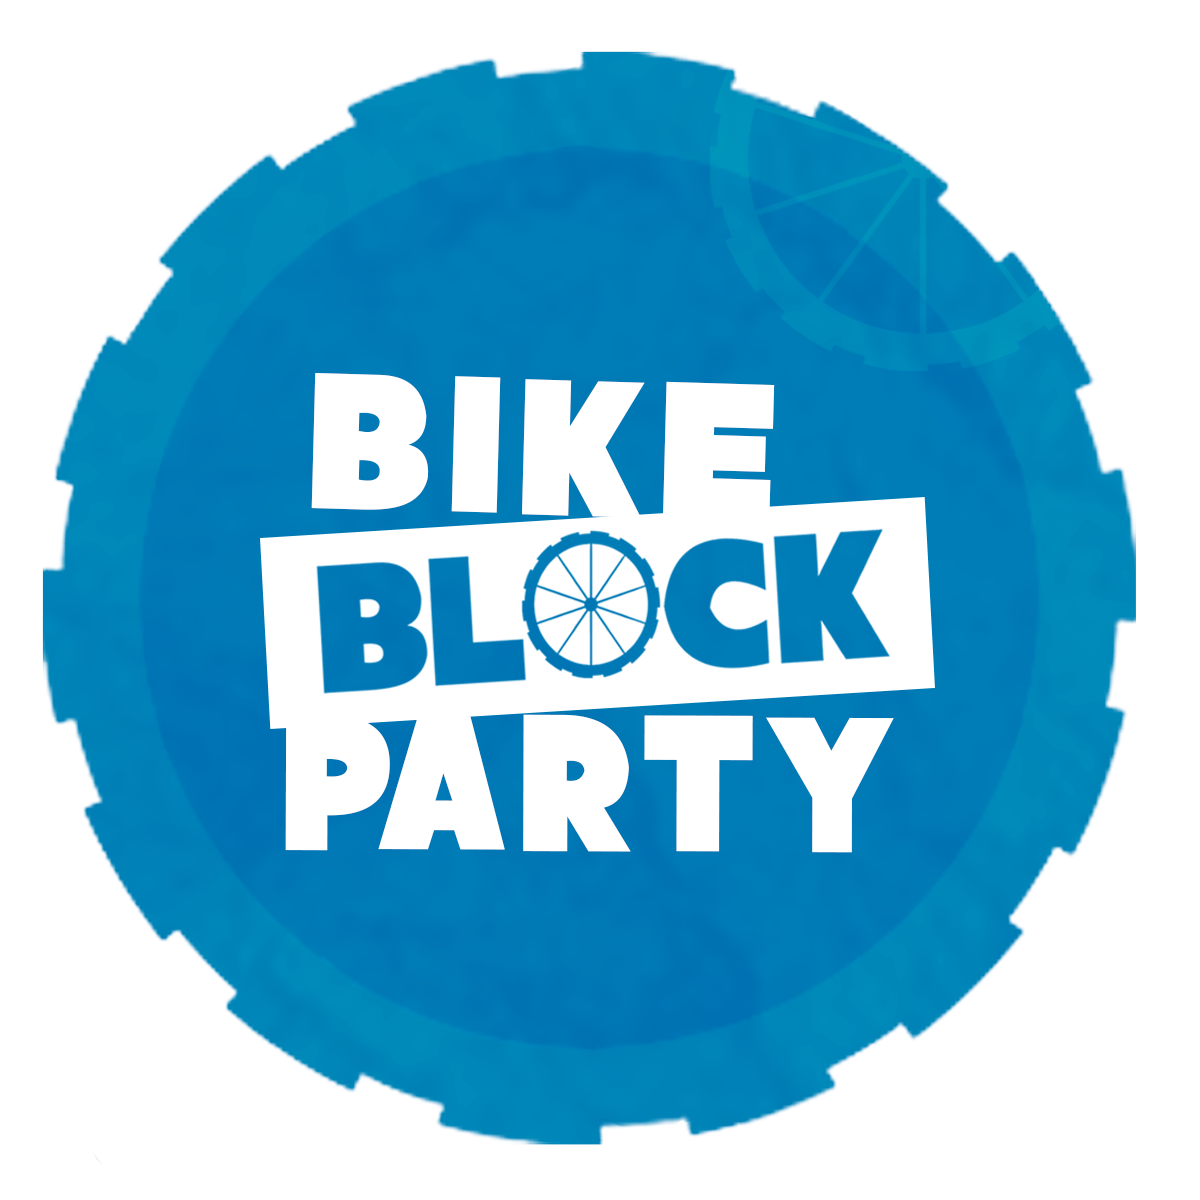 Bike Block Party Logo inside of blue gear